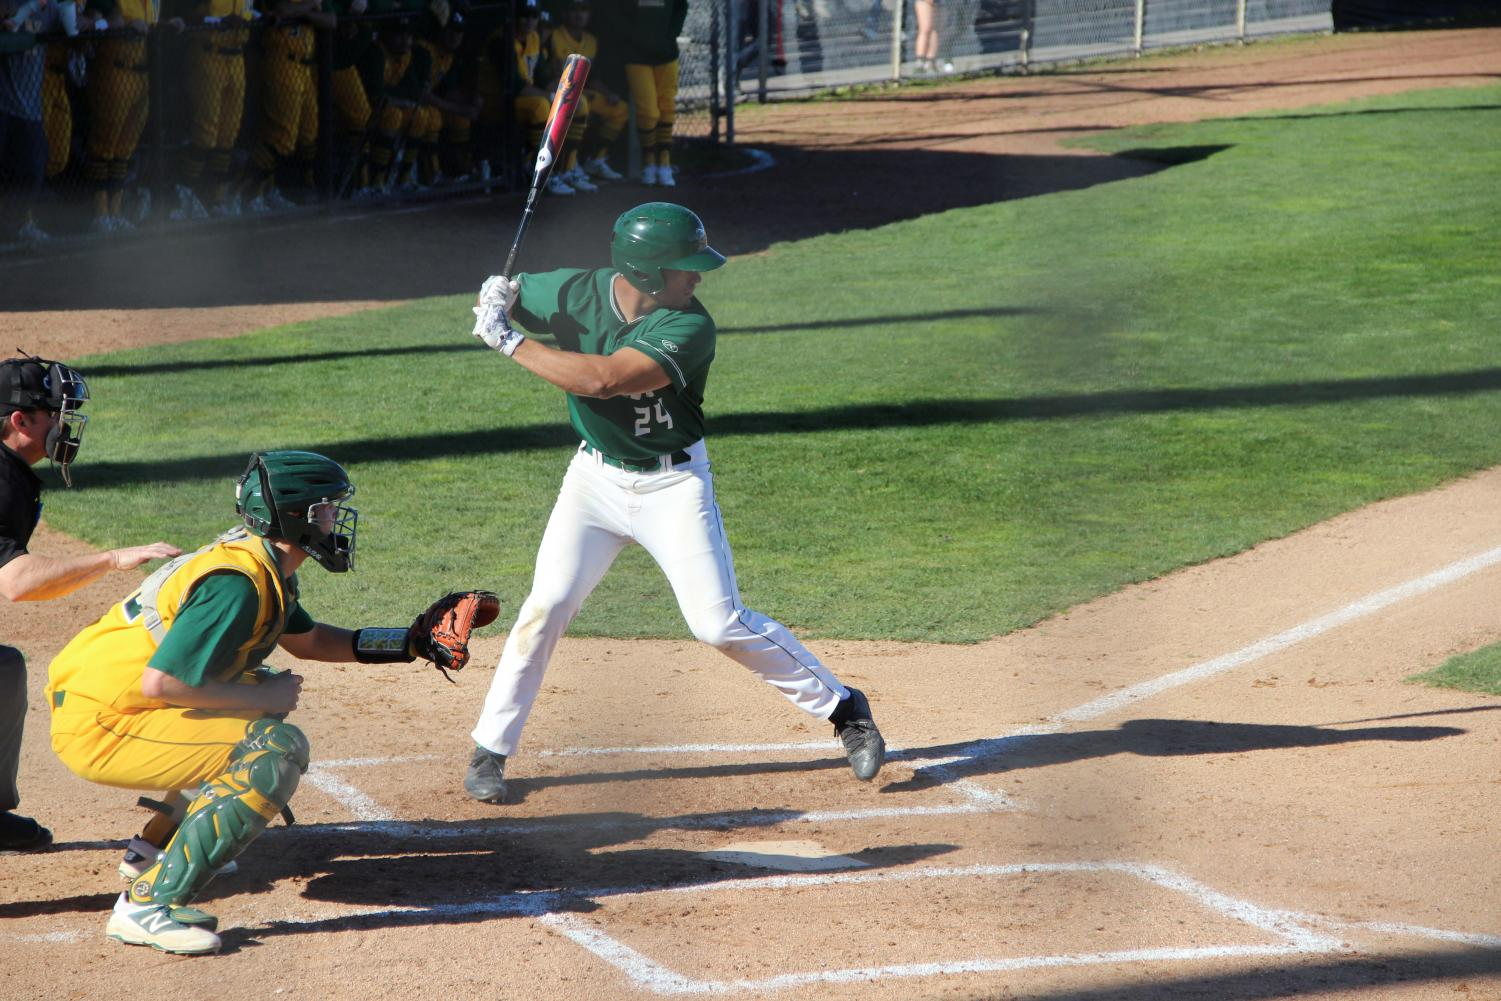 Catcher John Anthon bats in the first inning against Napa Valley College at Diablo Valley College in Pleasant Hill, California on February 6, 2018. | Photo by Luis Lopez